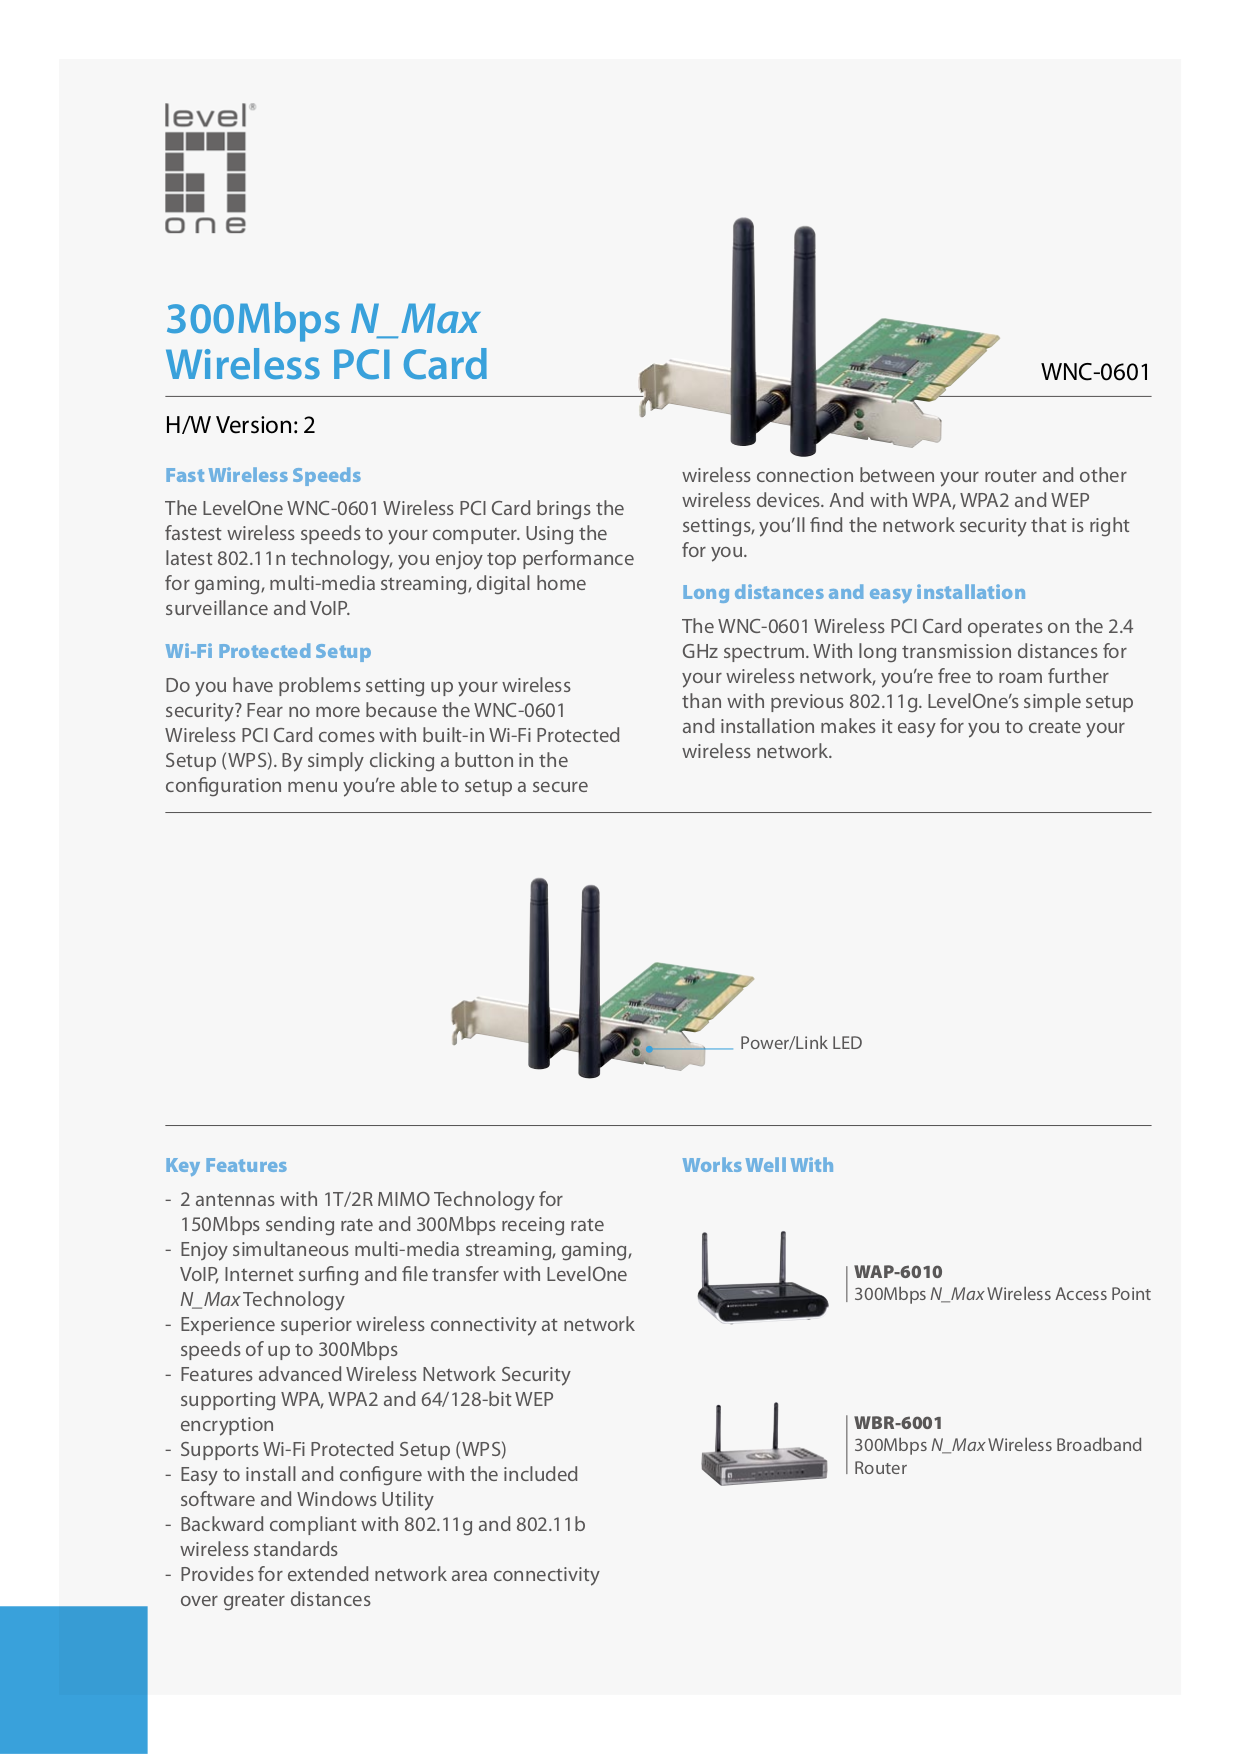 pdf for LevelOne Wireless Router WBR-6001 manual